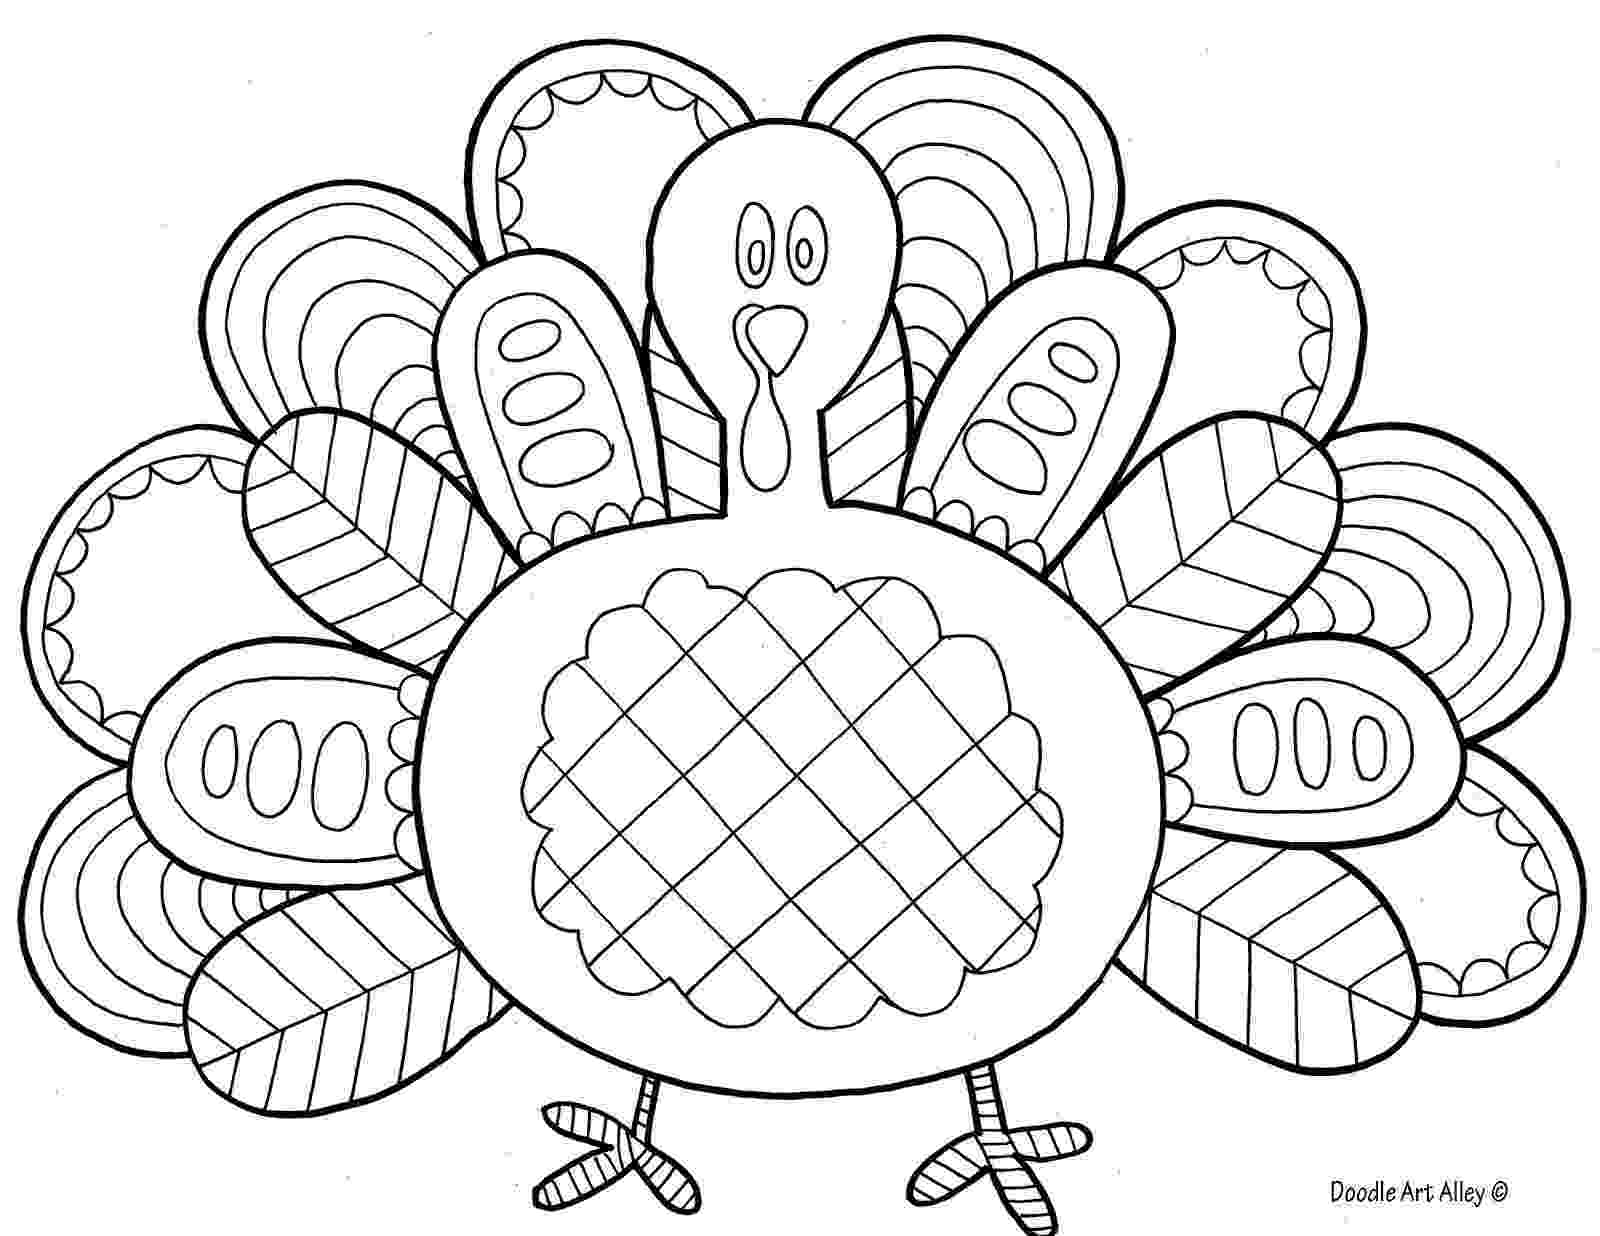 turkey coloring free printable turkey coloring pages for kids cool2bkids coloring turkey 1 3